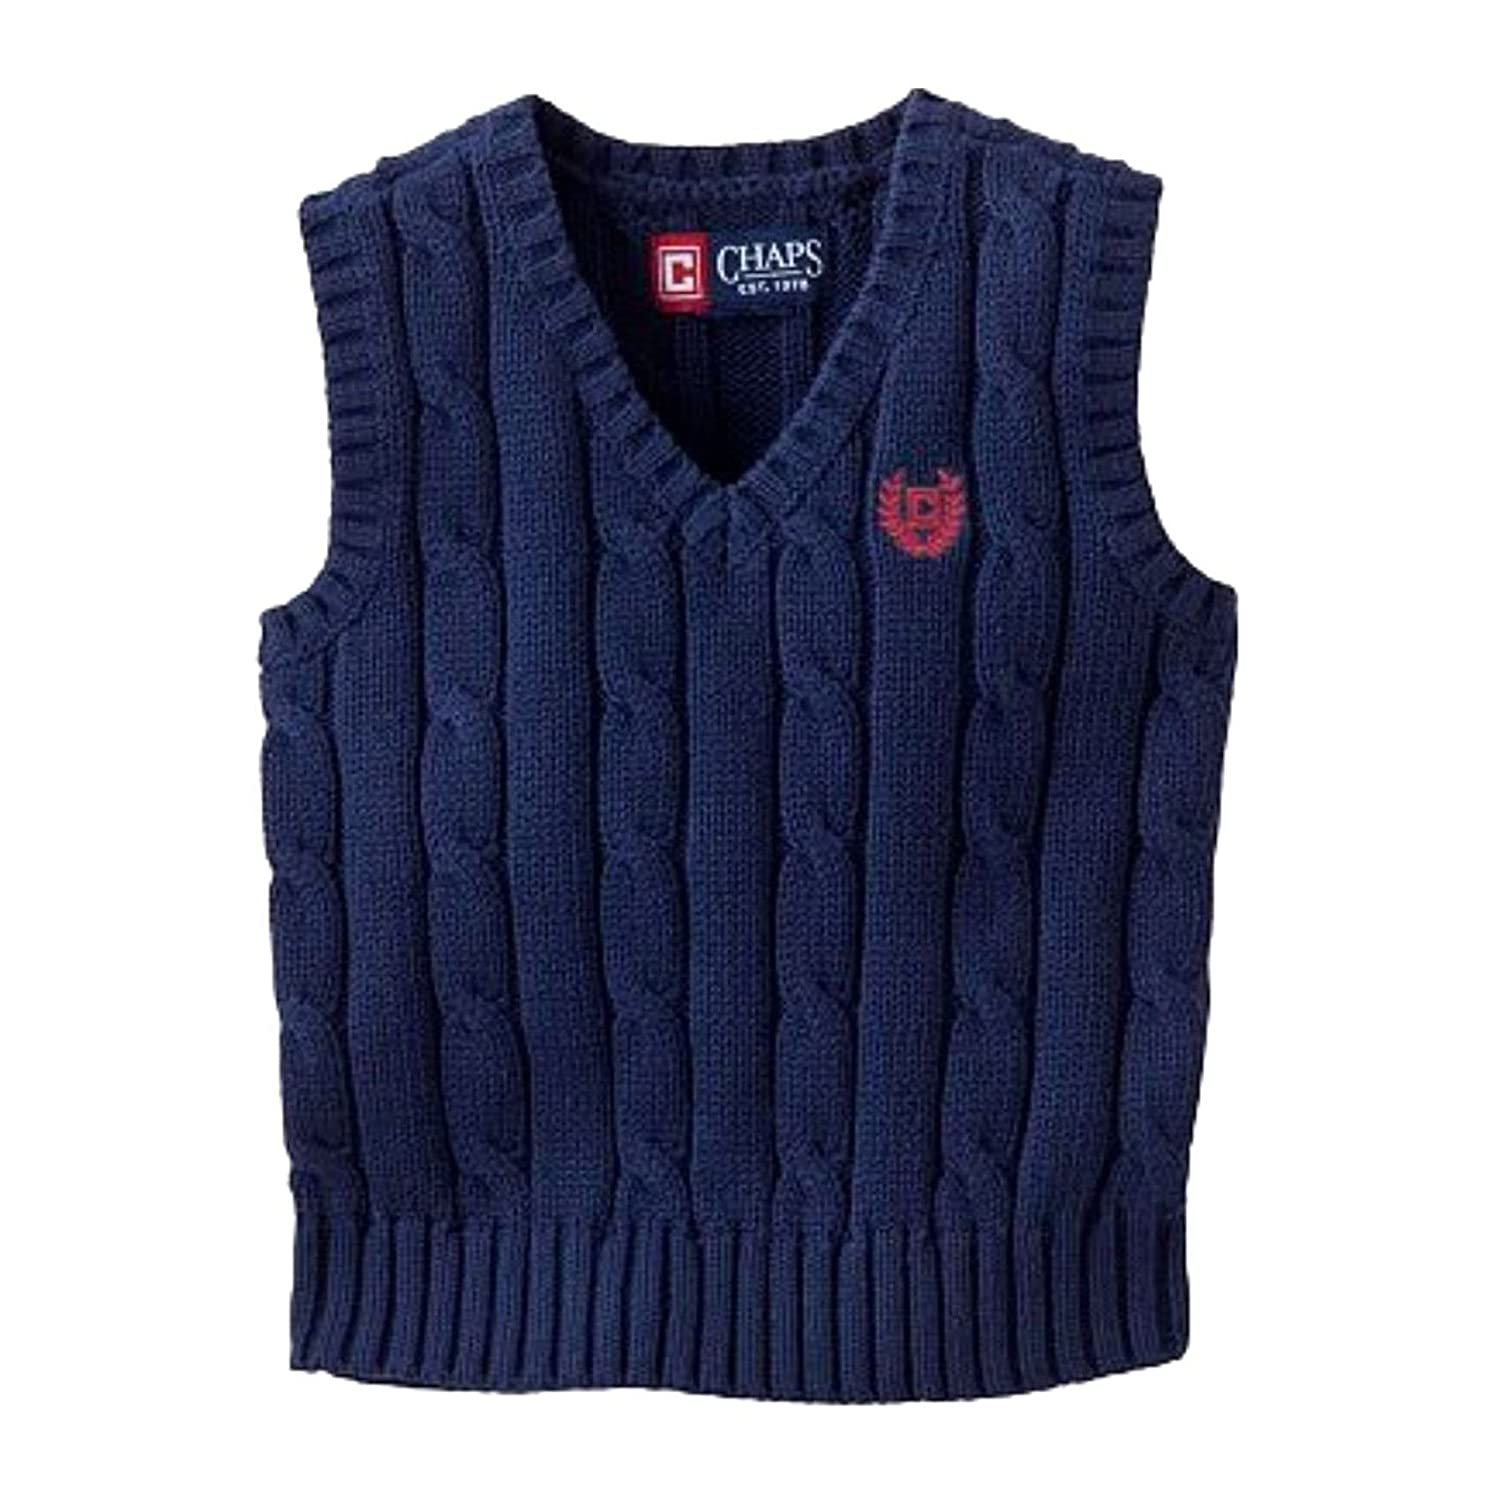 Chaps Cable-Knit V-Neck Sweater Vest for Boys